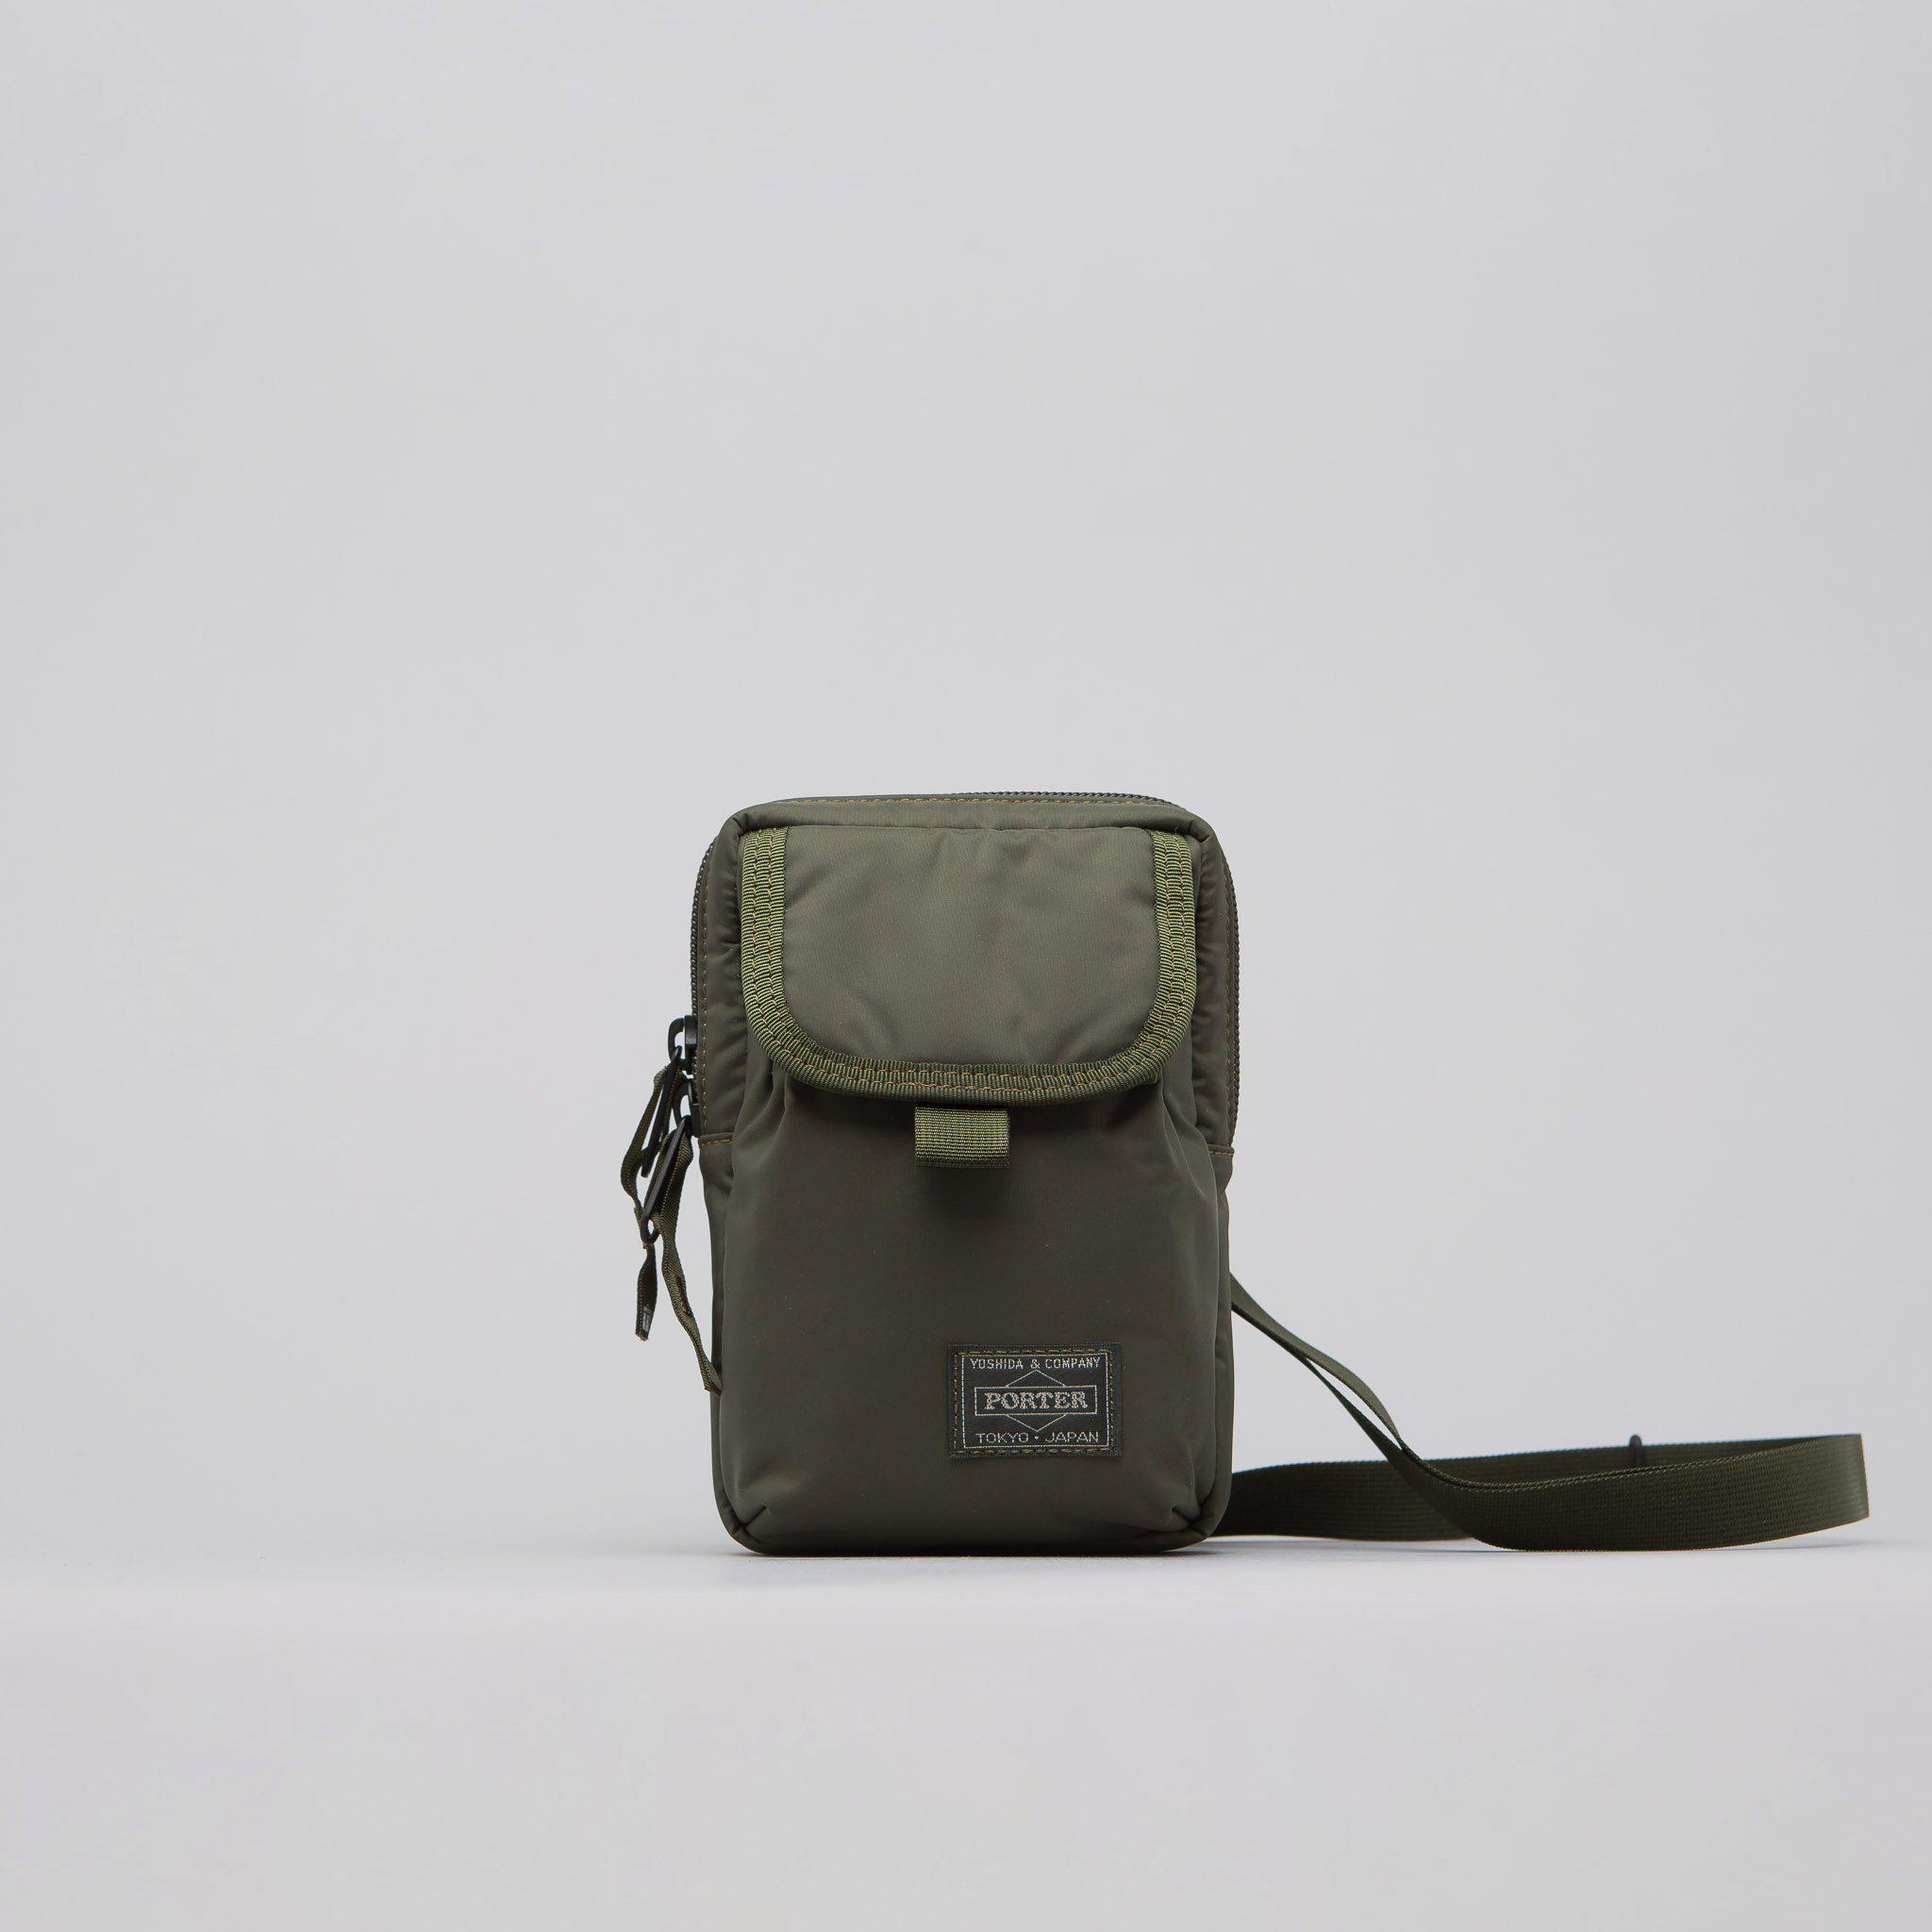 Lyst - Head Porter Shoulder Pouch In Olive Drab in Green for Men 4fbab636267b6